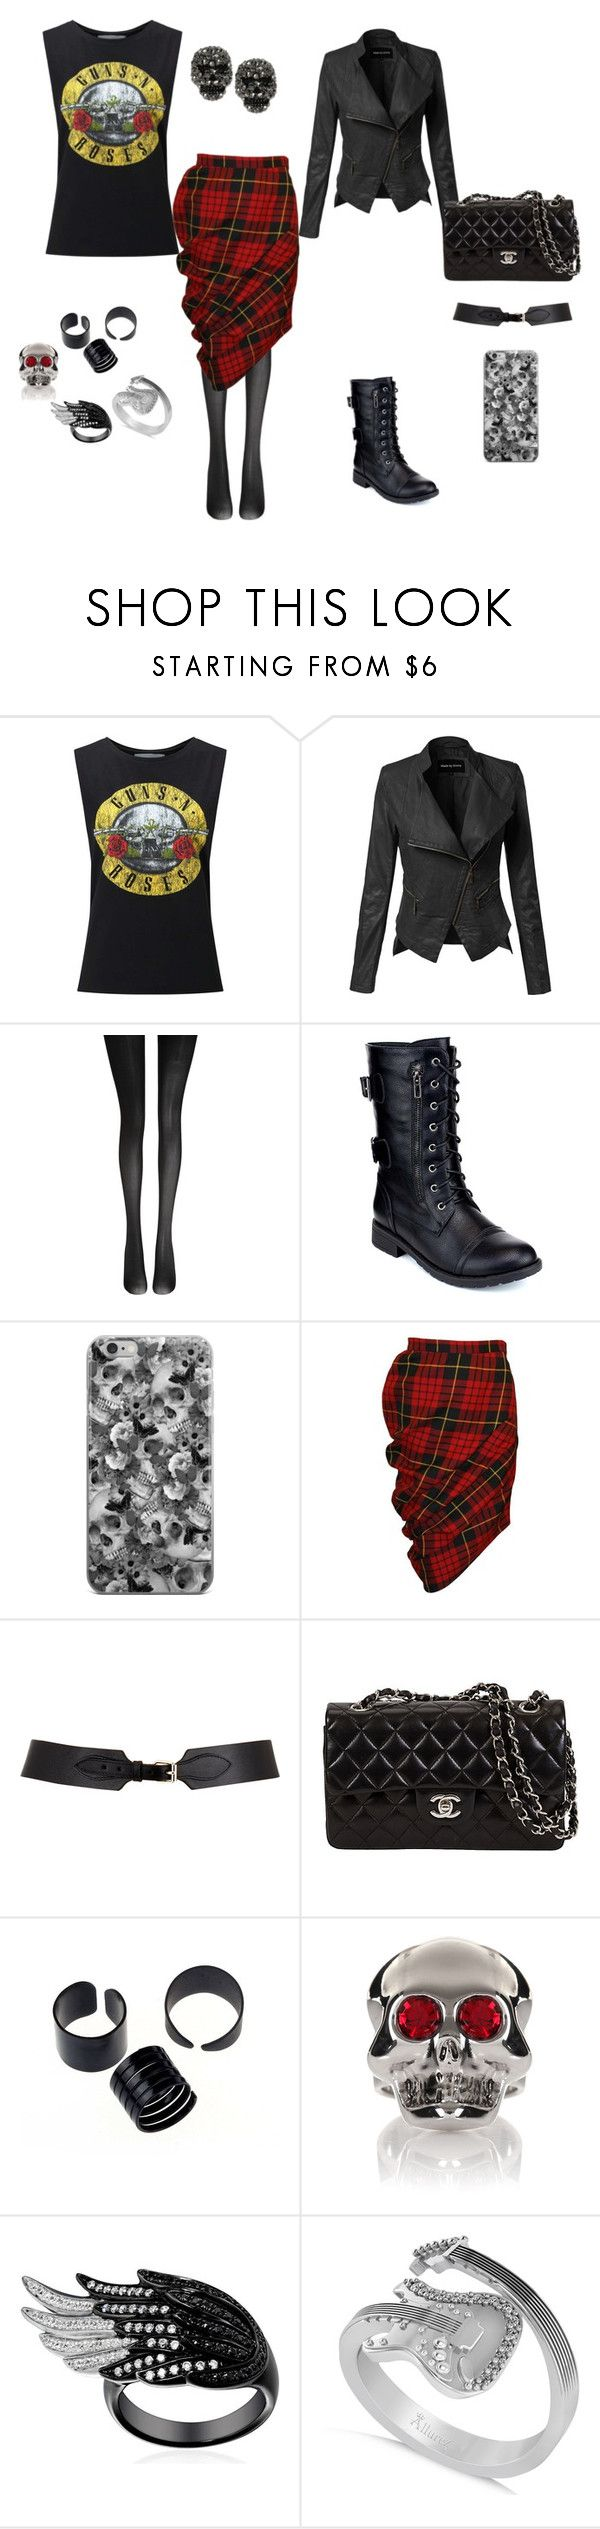 Todo dia é dia de Rock! by simone-silva-s2 on Polyvore featuring moda, Miss Selfridge, Alexander McQueen, Fogal, Refresh, Betsey Johnson, Allurez, Moschino and Maison Boinet